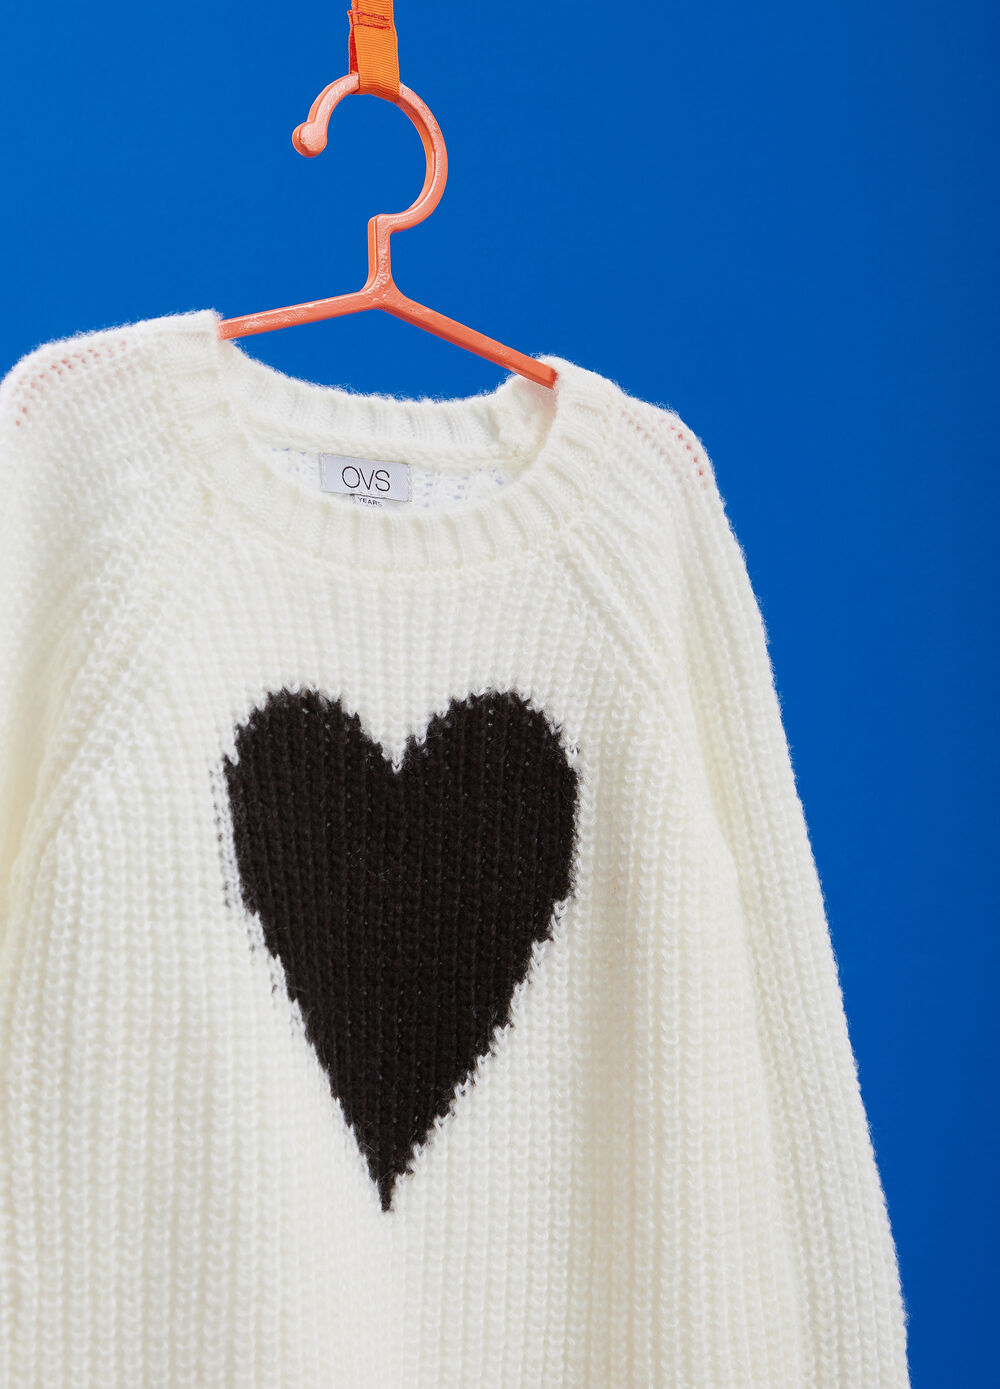 Knitted pullover with heart print